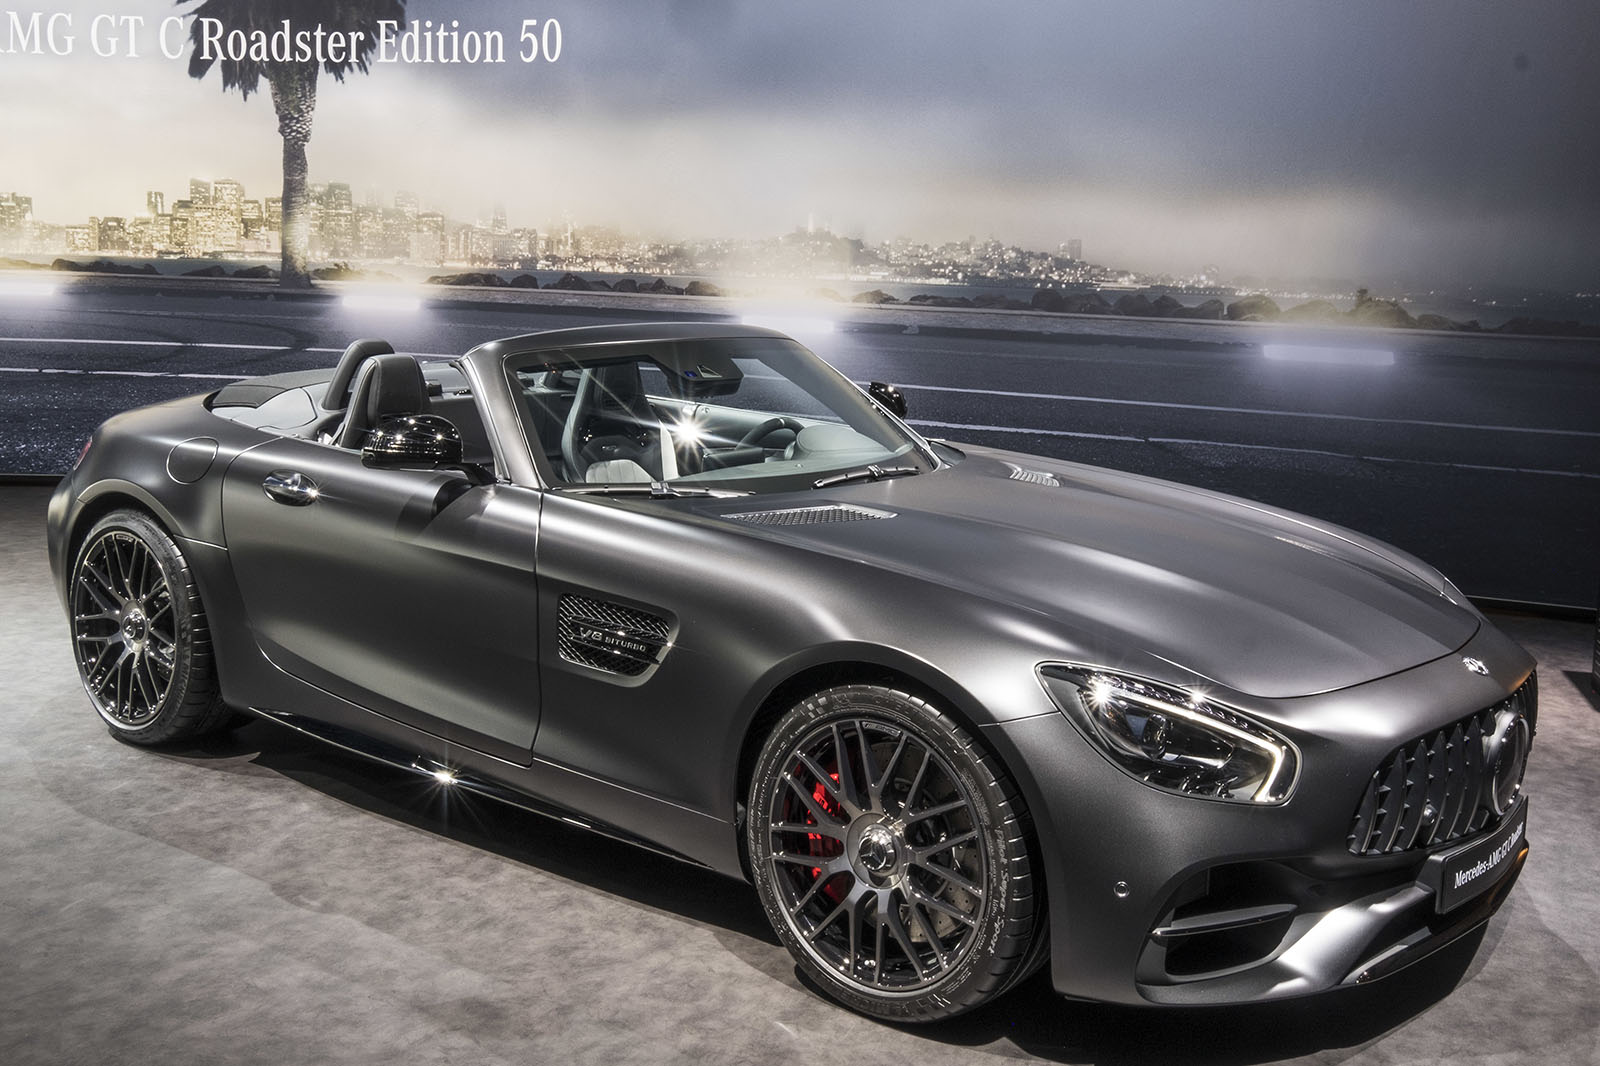 Mercedes Amg Gt C Roadster Edition 50 Heads Trio Of Special Models Autocar